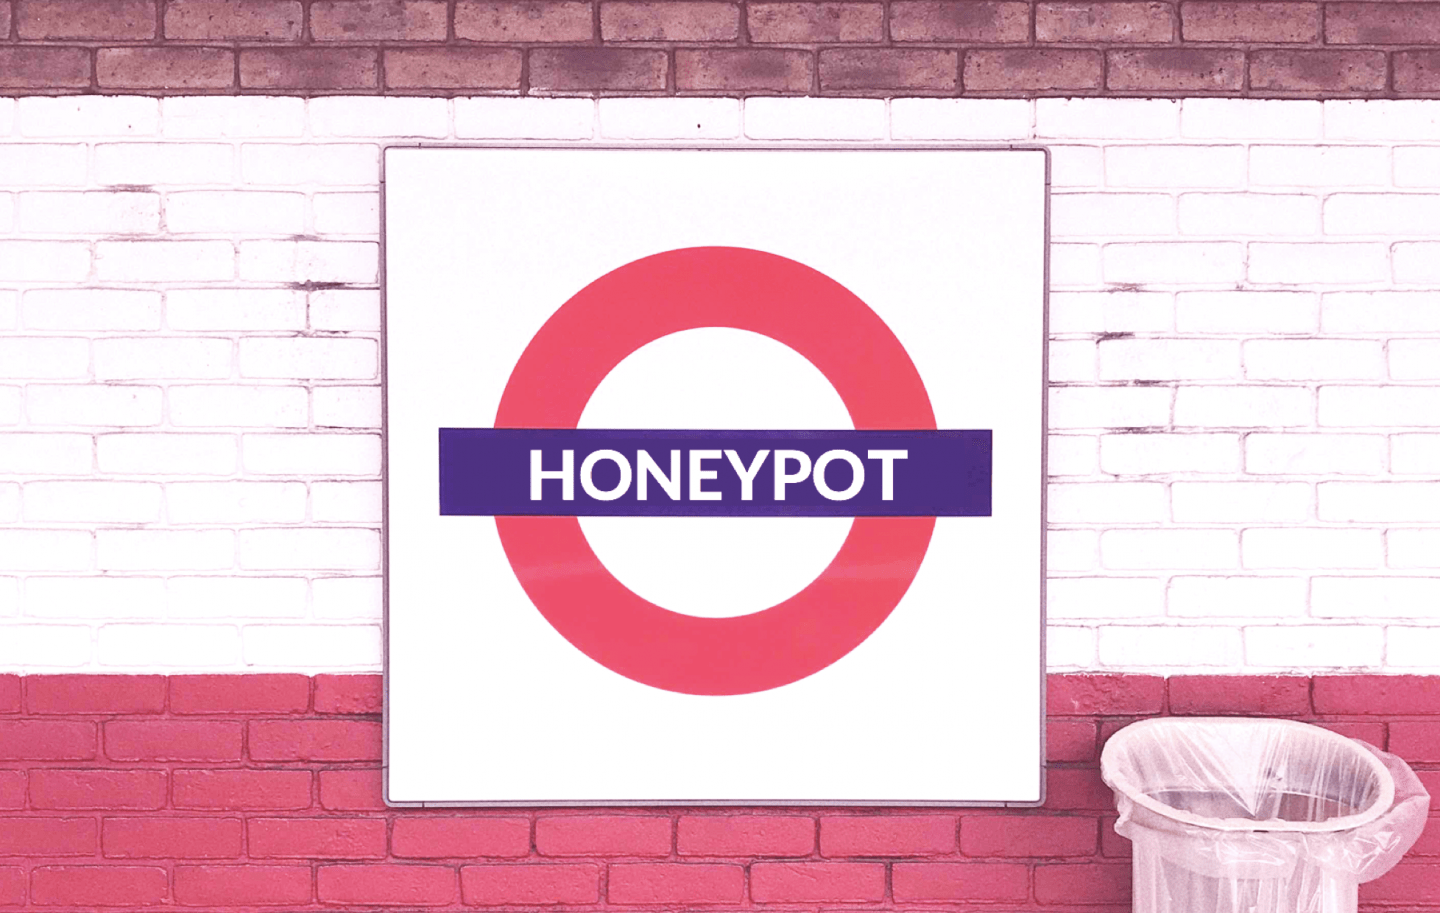 Honeypot: The New (Old) Way To Meet Singles In London